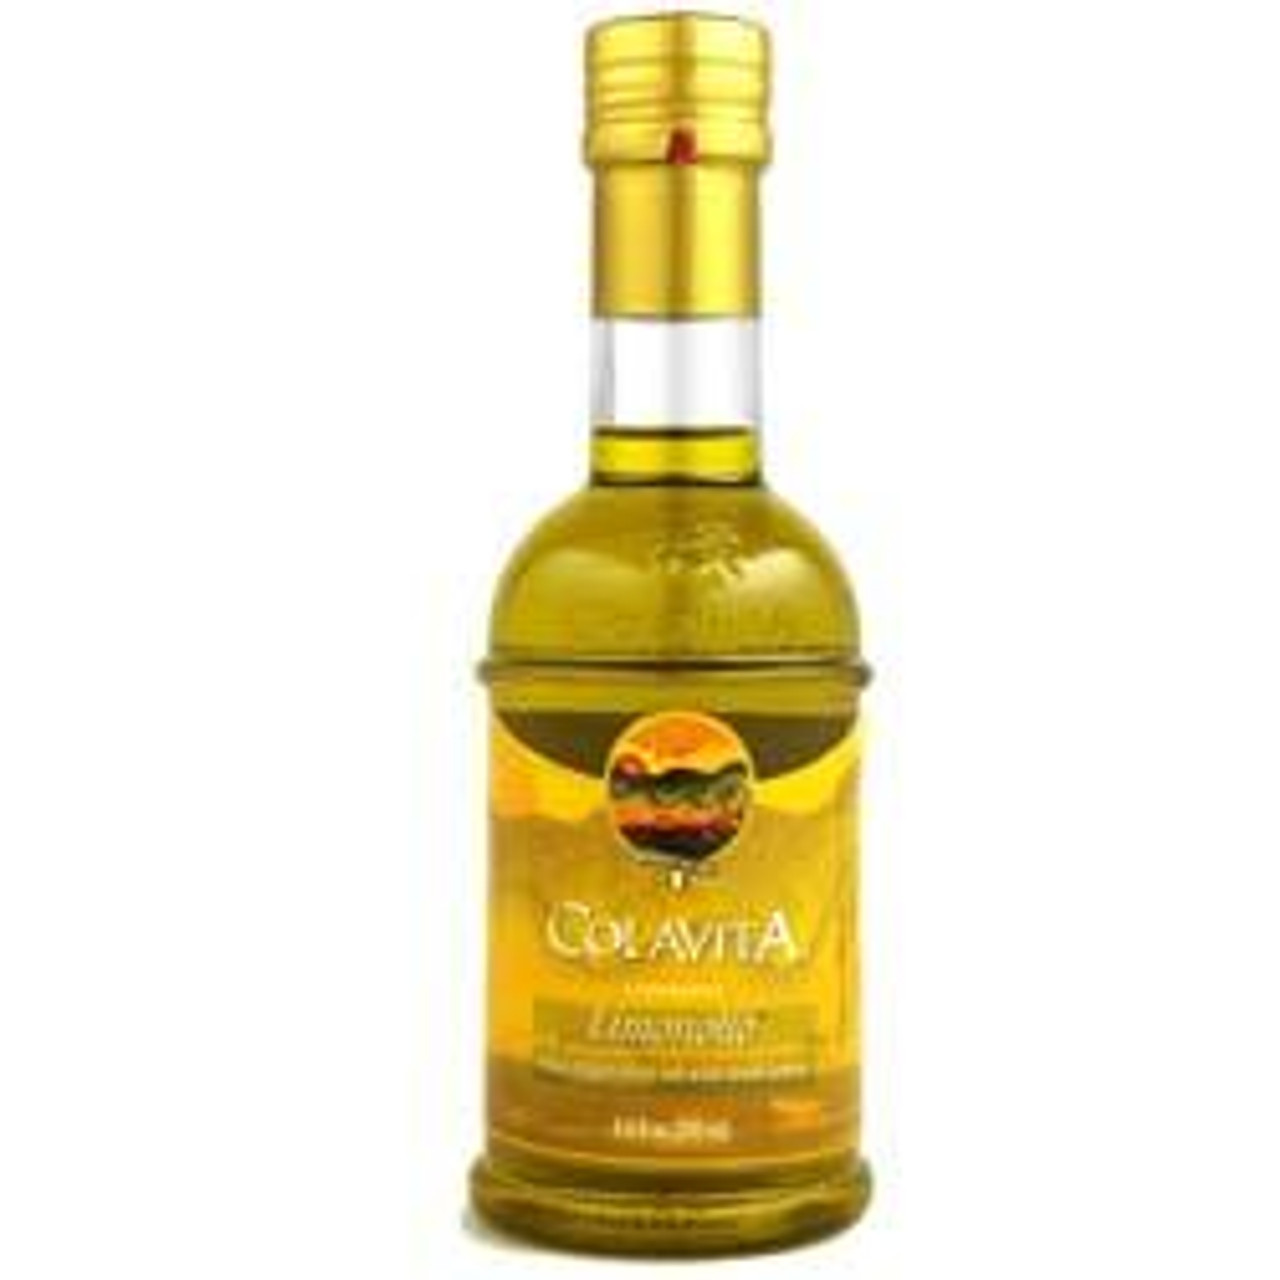 Colavita Extra Virgin Olive Oil infused with lemon essence